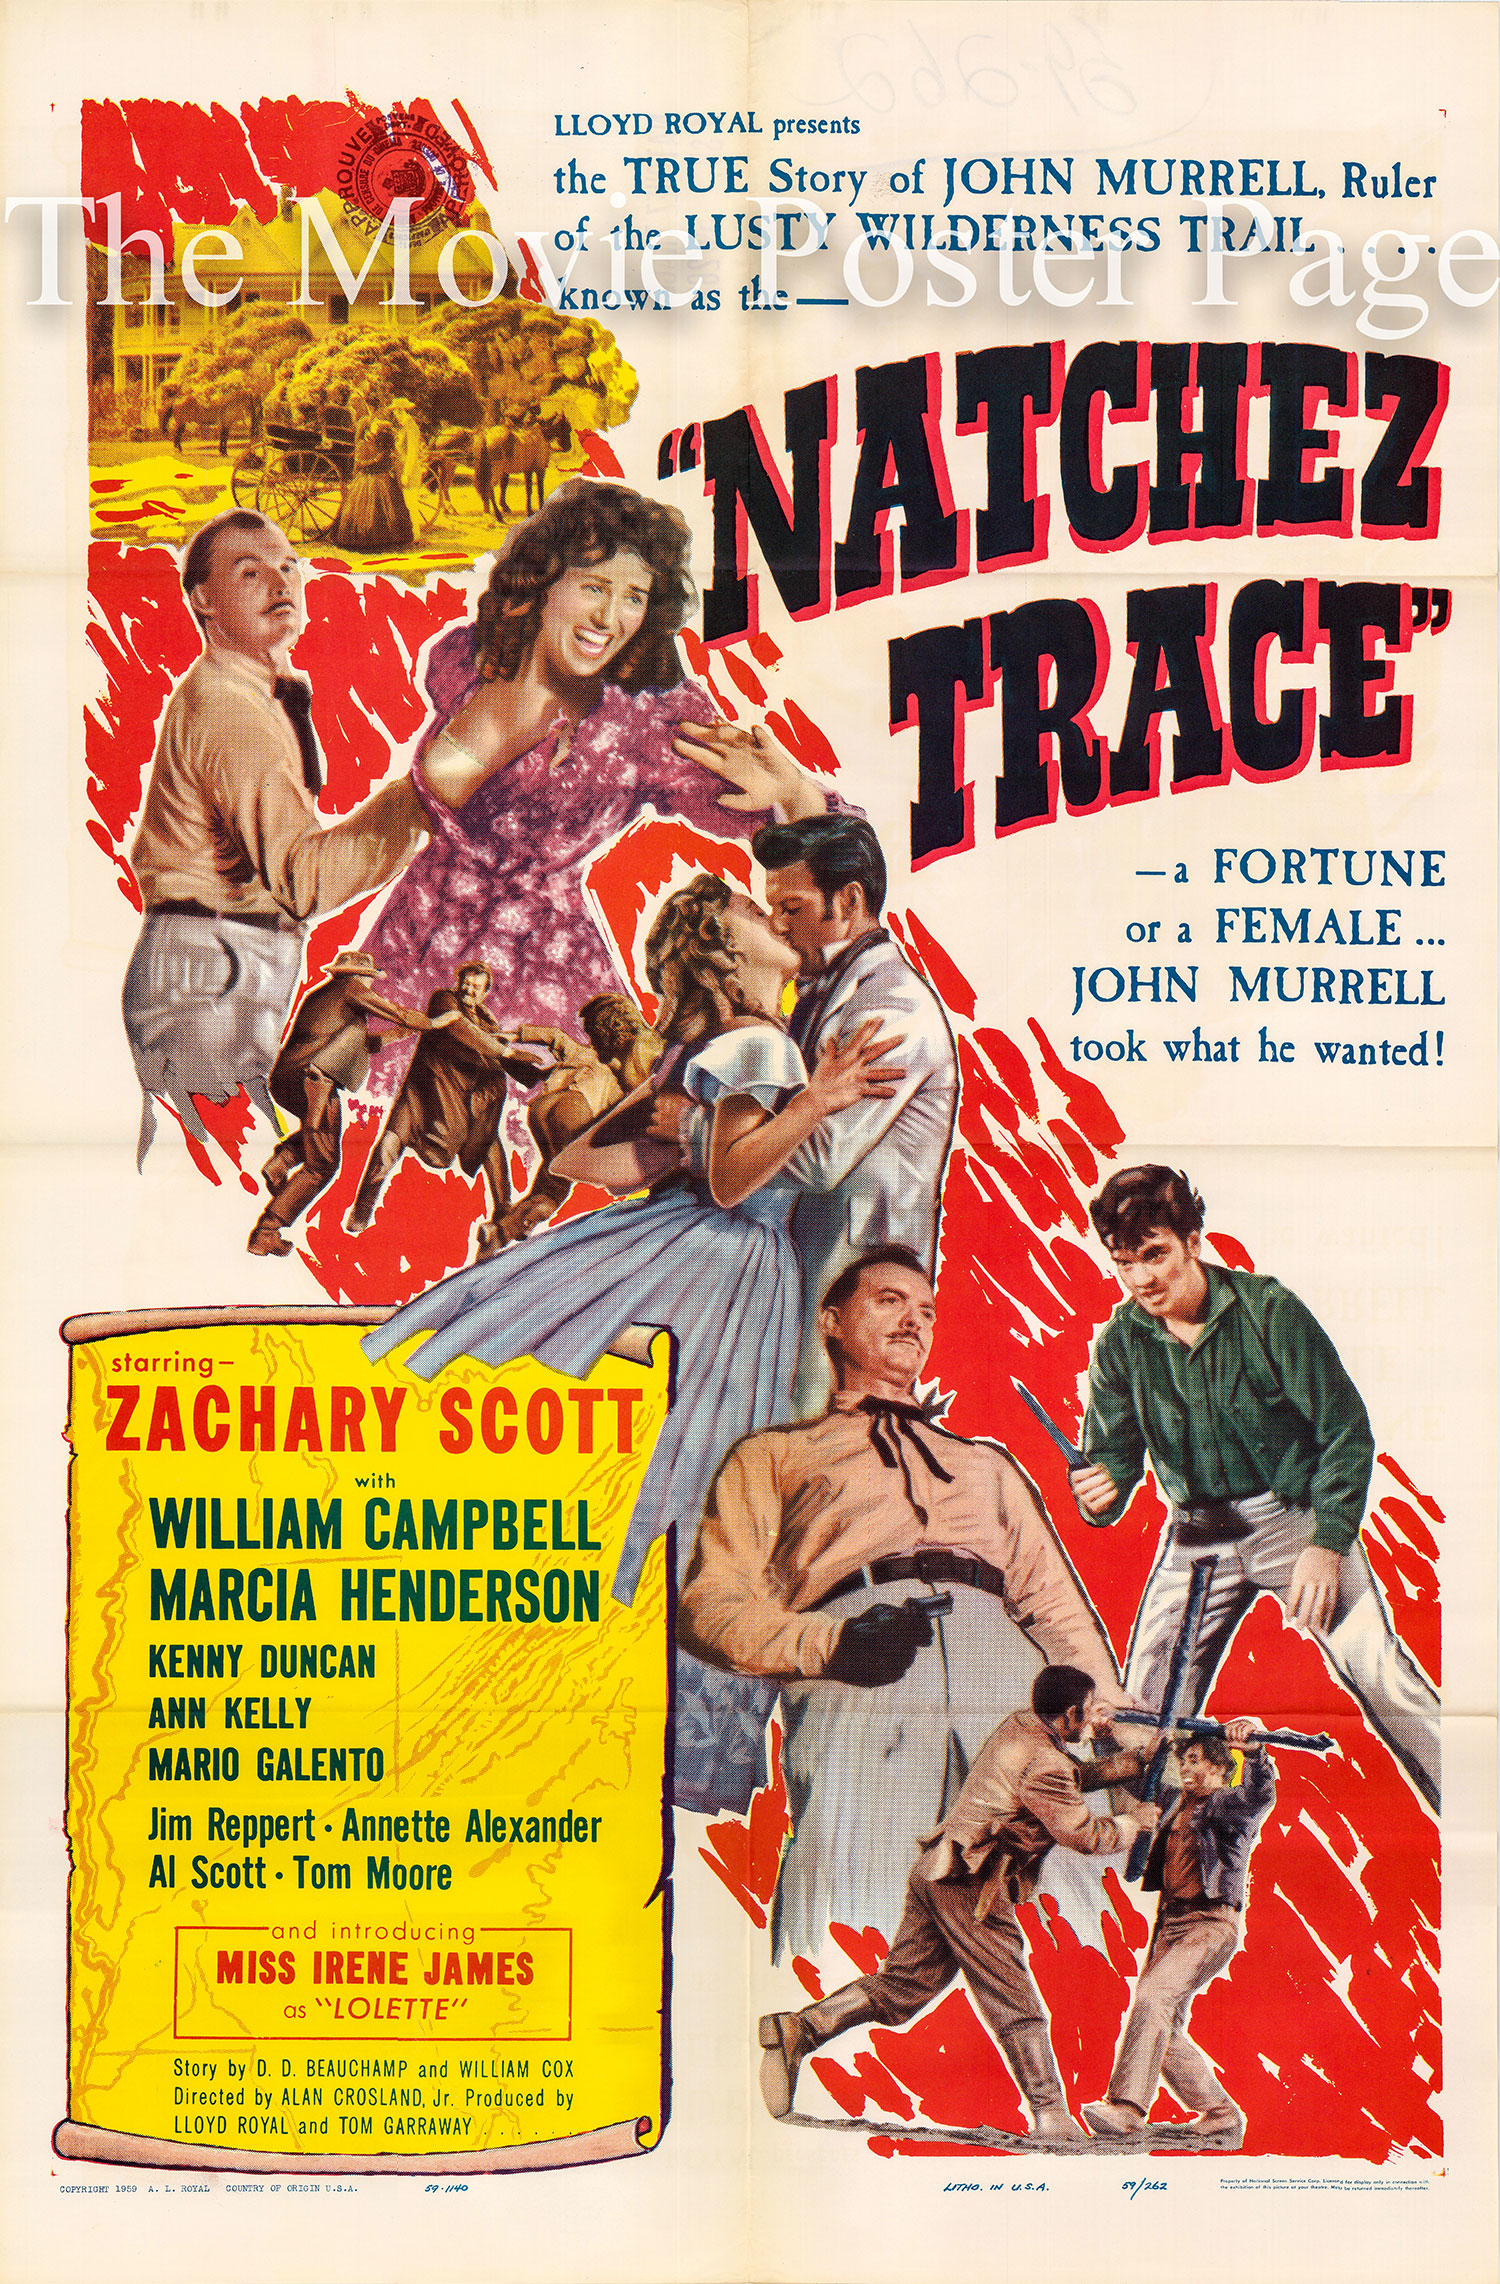 Pictured is a U.S. one-sheet promotional poster for the 1959 Alan Crosland Jr. film Natchez Trace starring Zachary Scott.